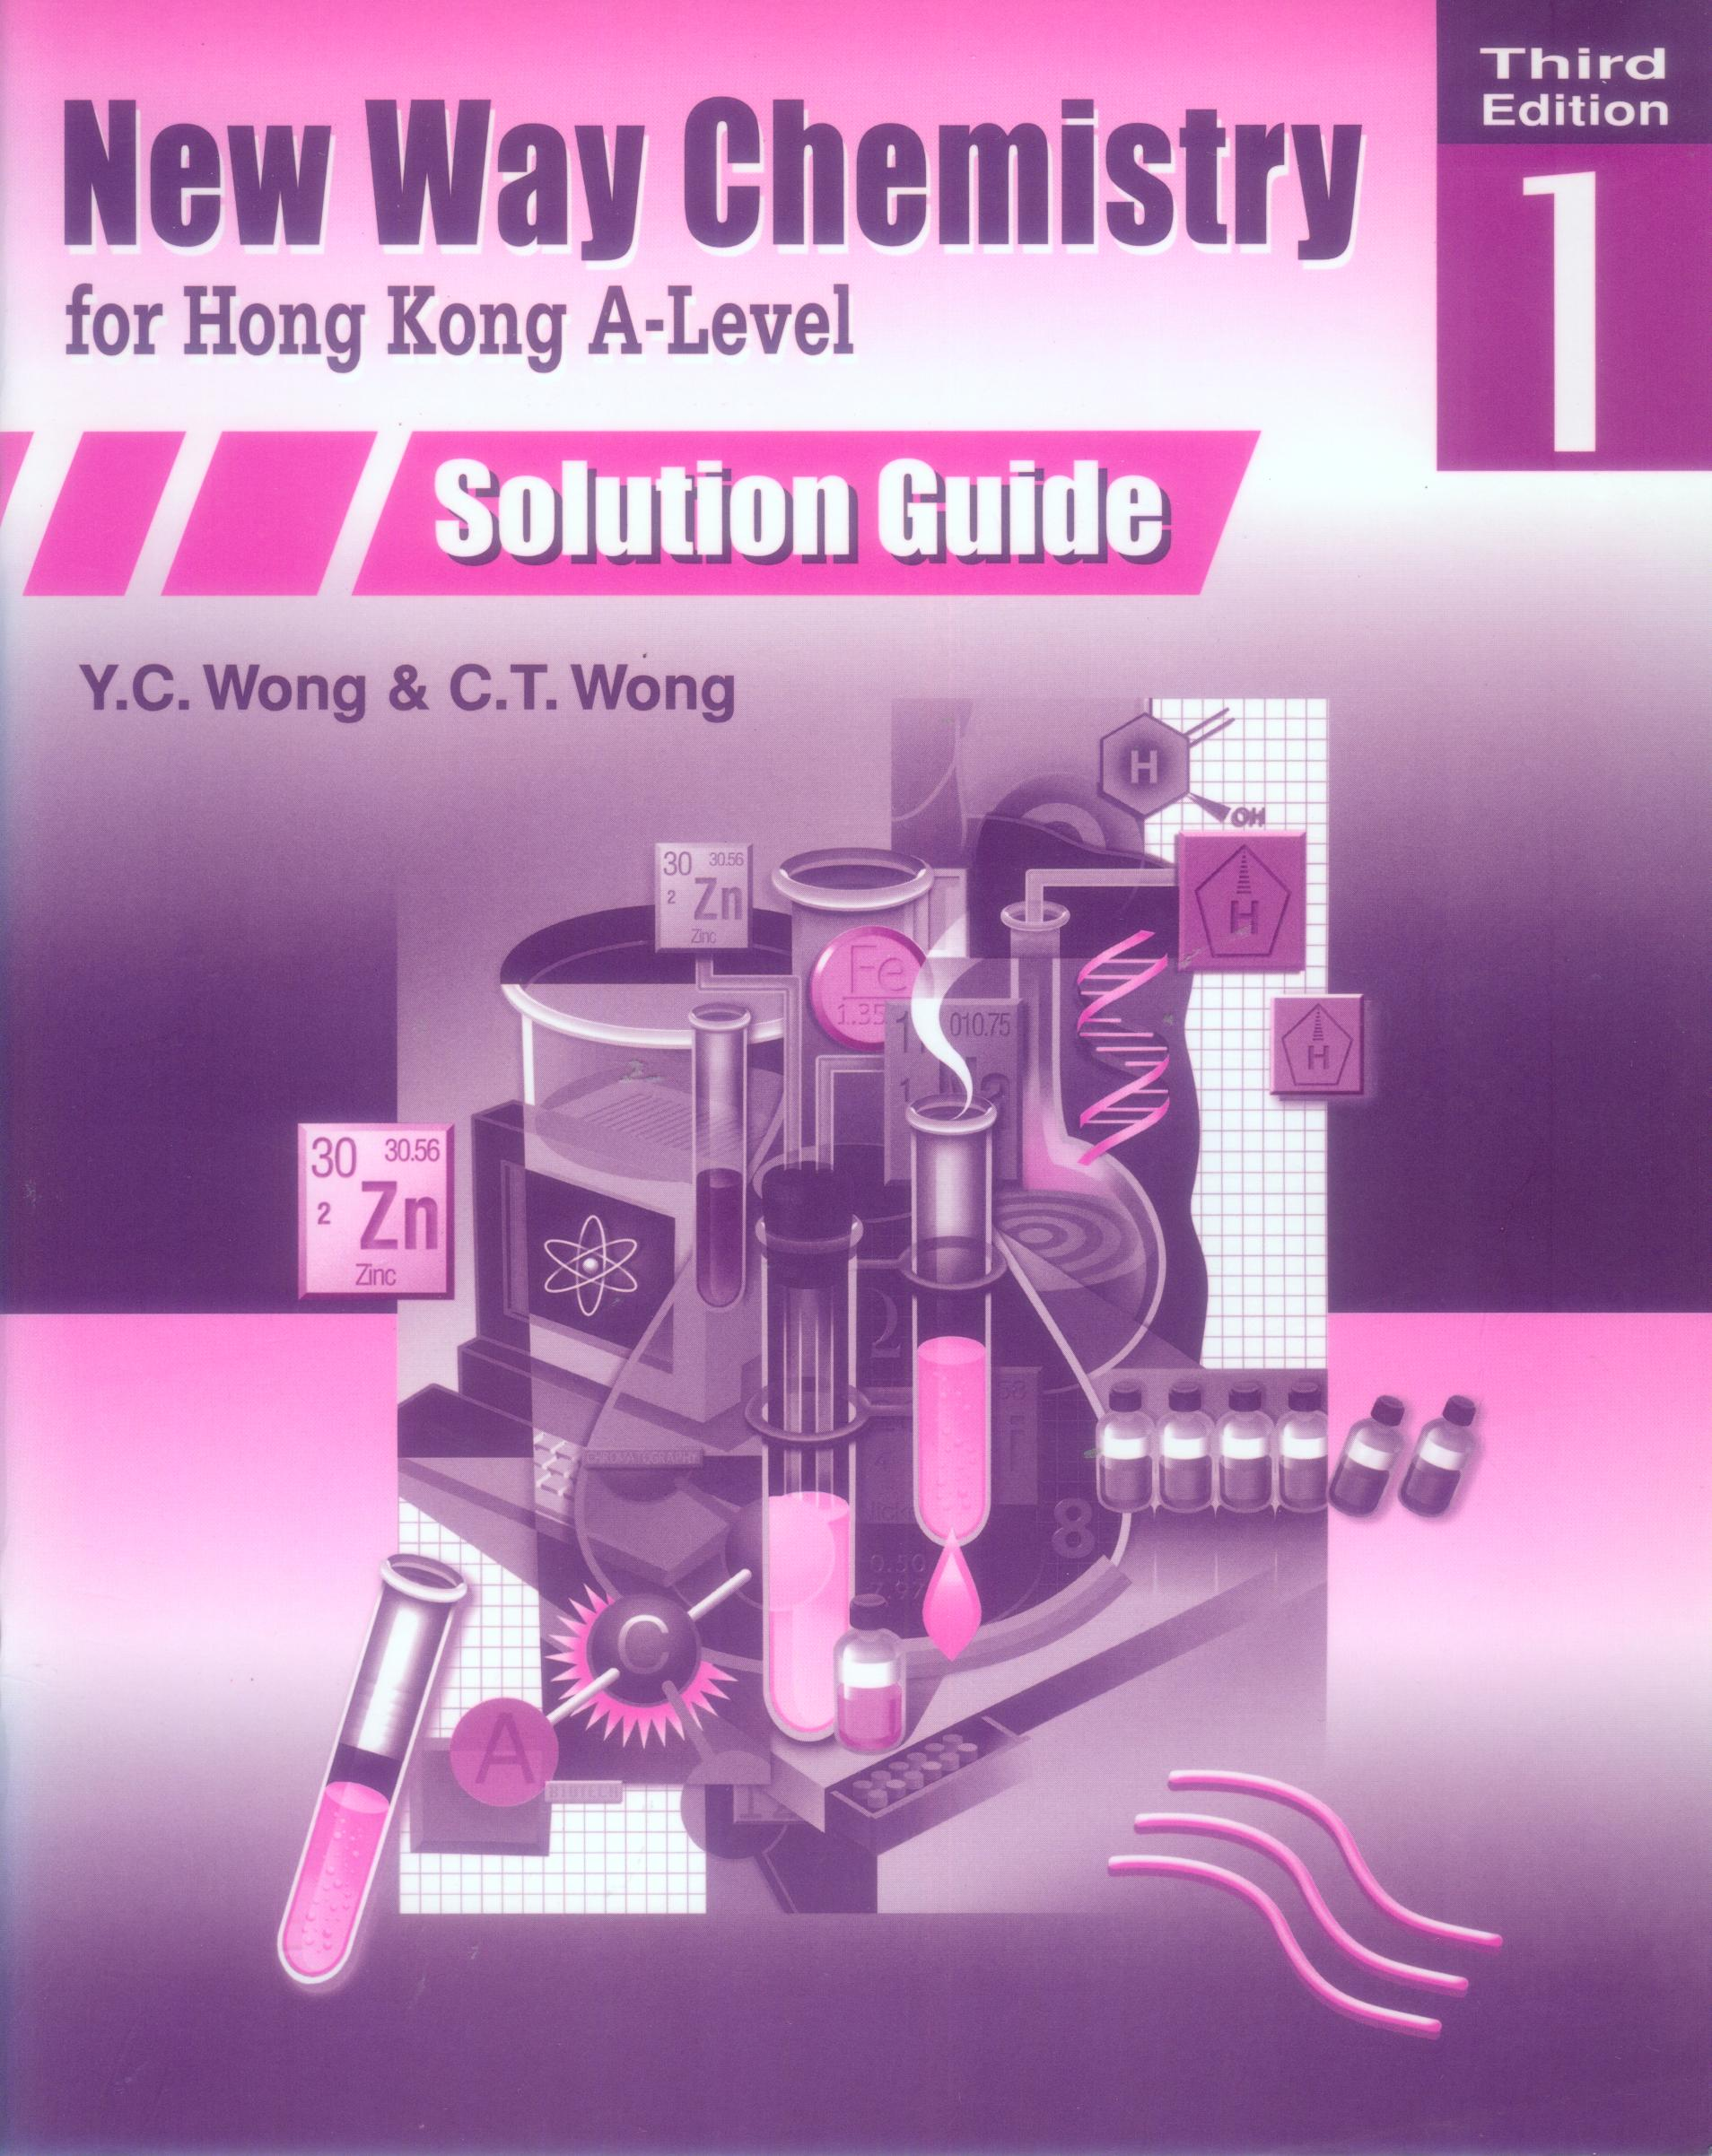 New Way Chemistry for HK A-Level Vol.1, 3/e